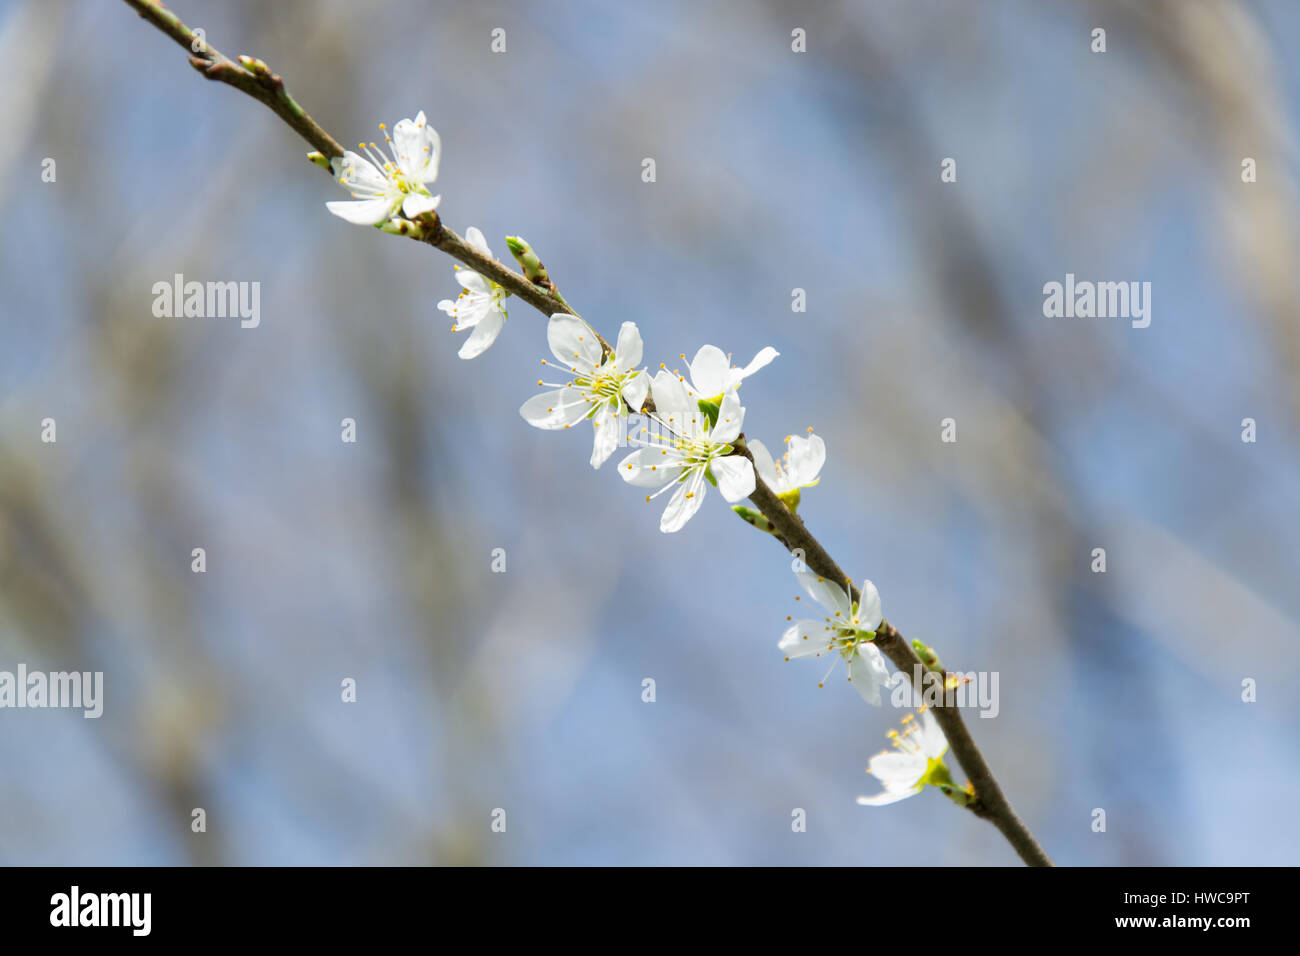 Stunning white plum flower gallery images for wedding gown ideas clouseup of white plum flower spring blossom stock photo royalty mightylinksfo Choice Image